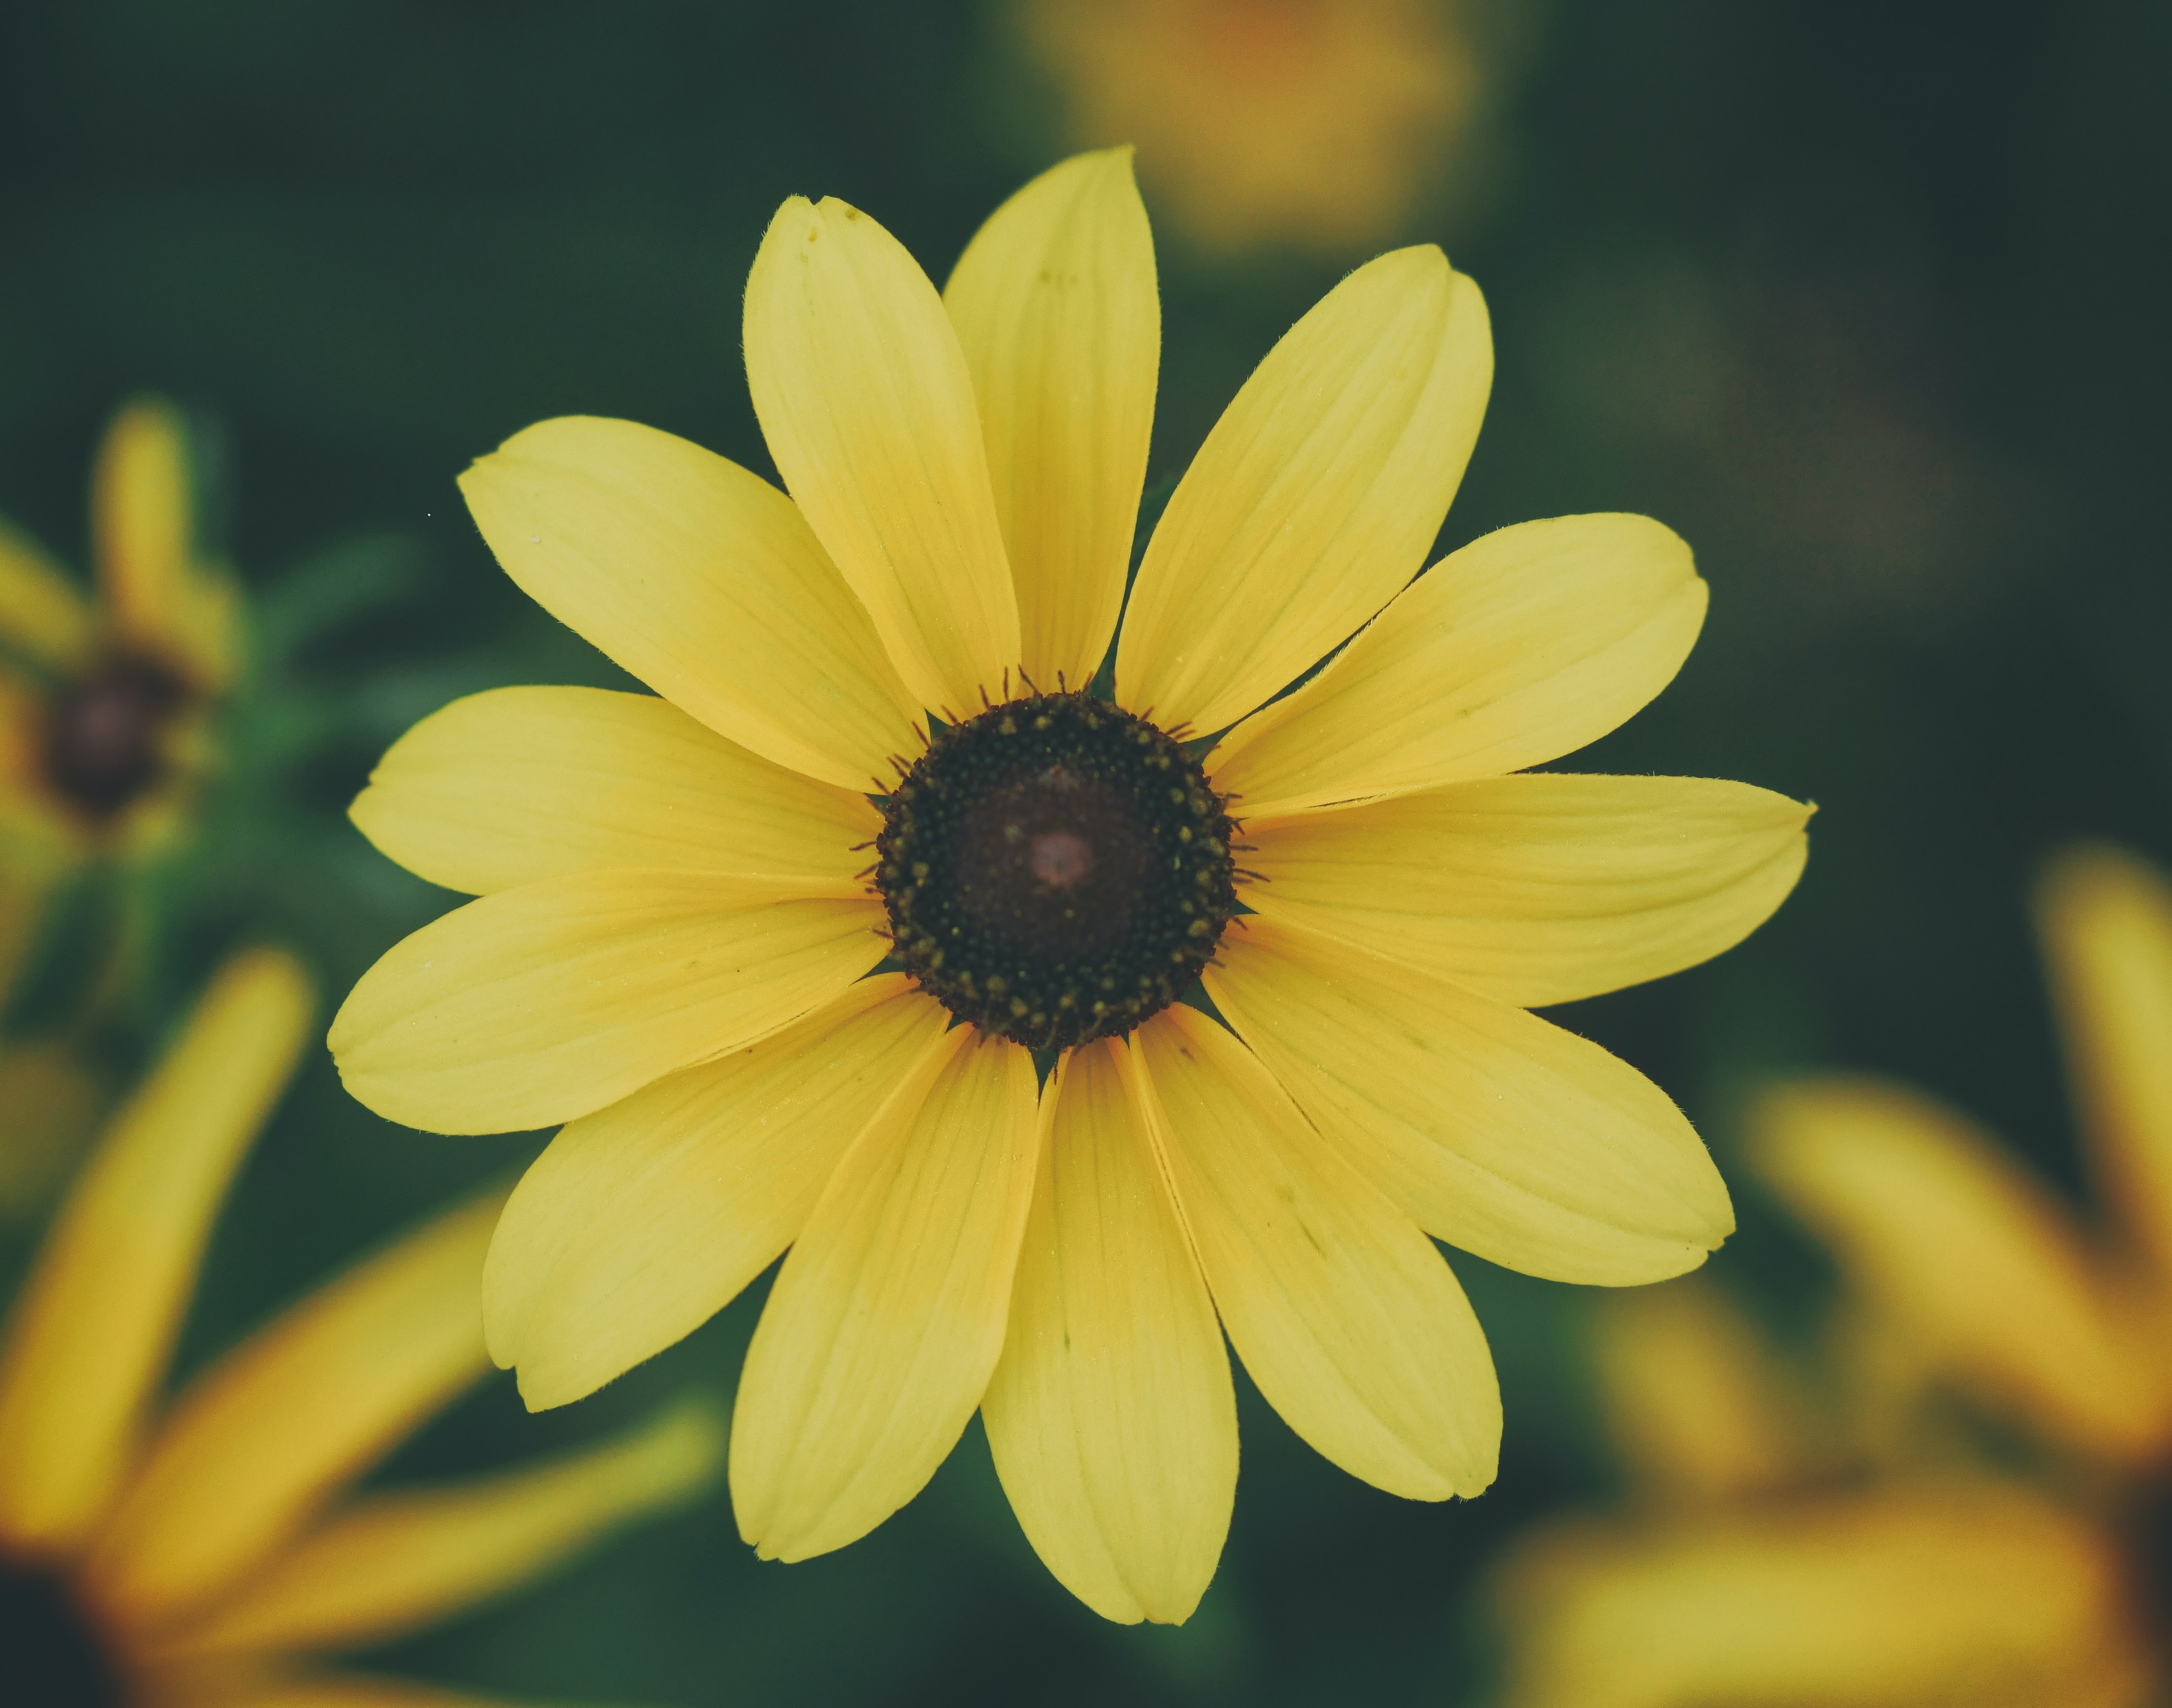 yellow petaled flower in bloom